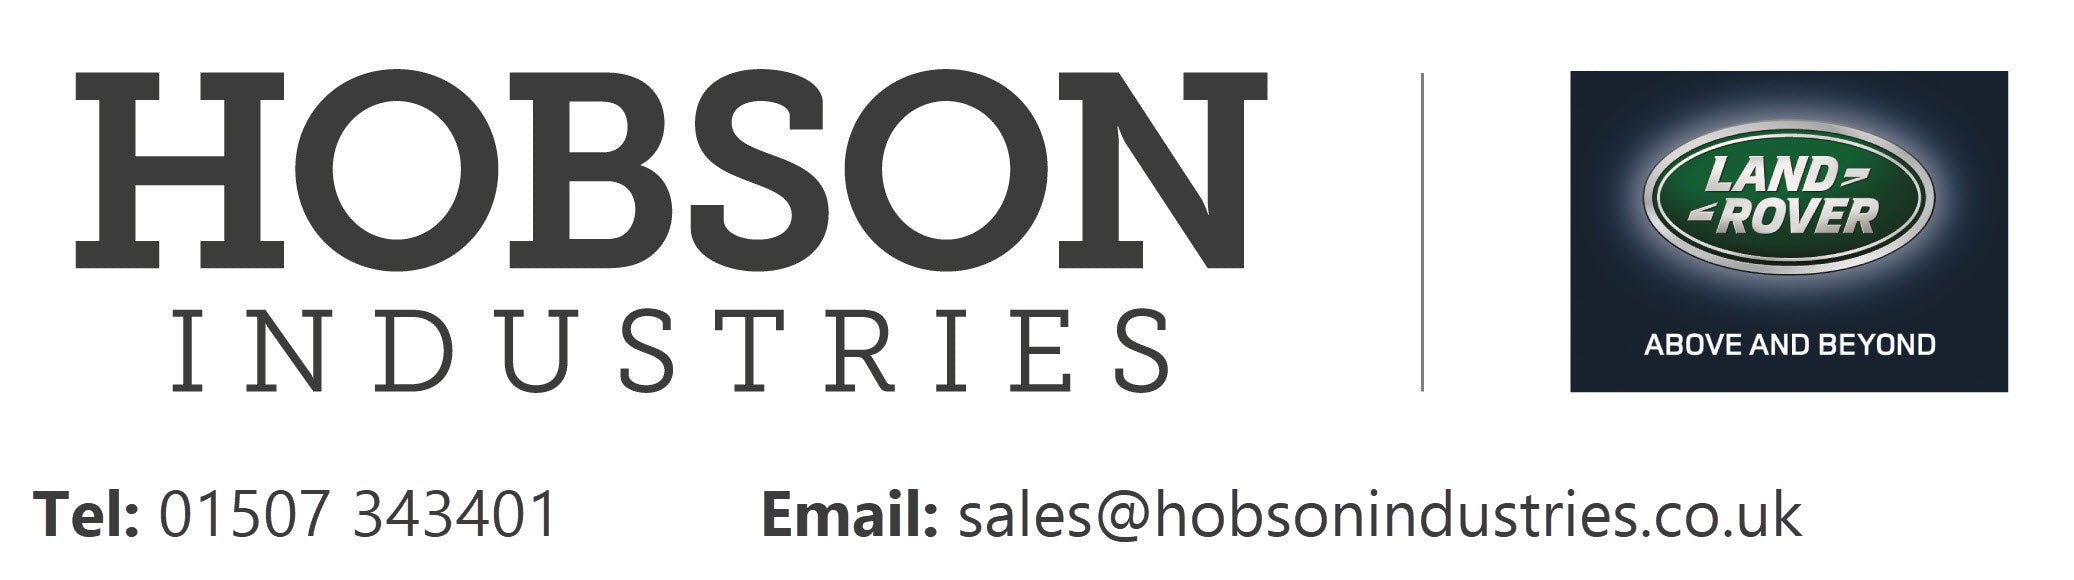 Hobson Industries